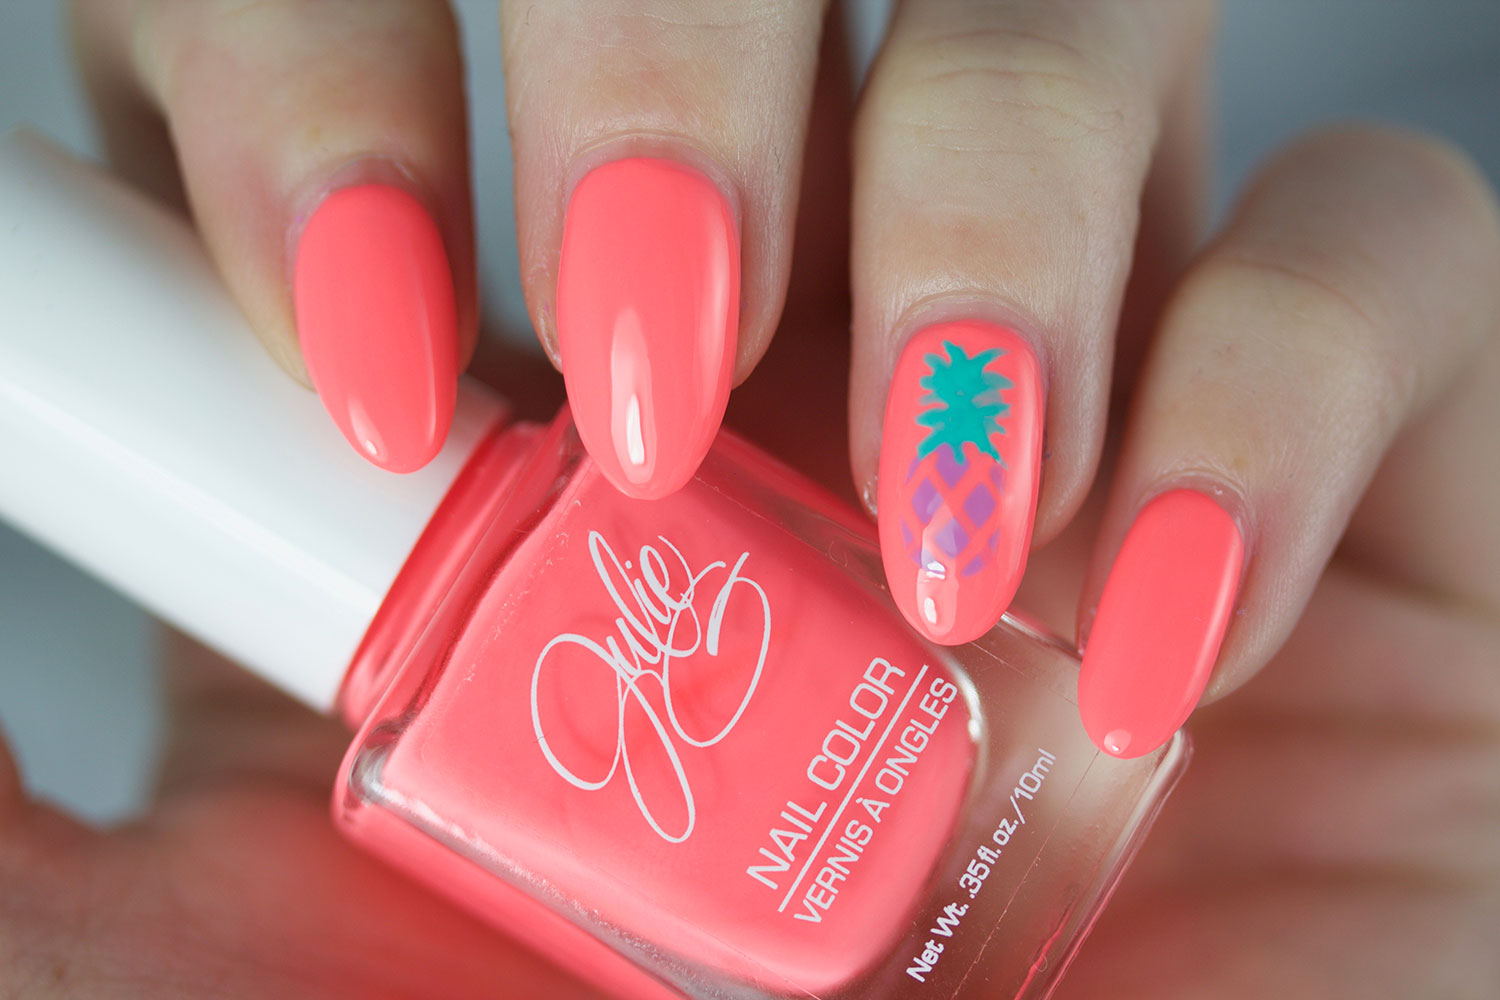 The Daily Nail, Jesse's Girl, Julie G, Bikini, Swatch